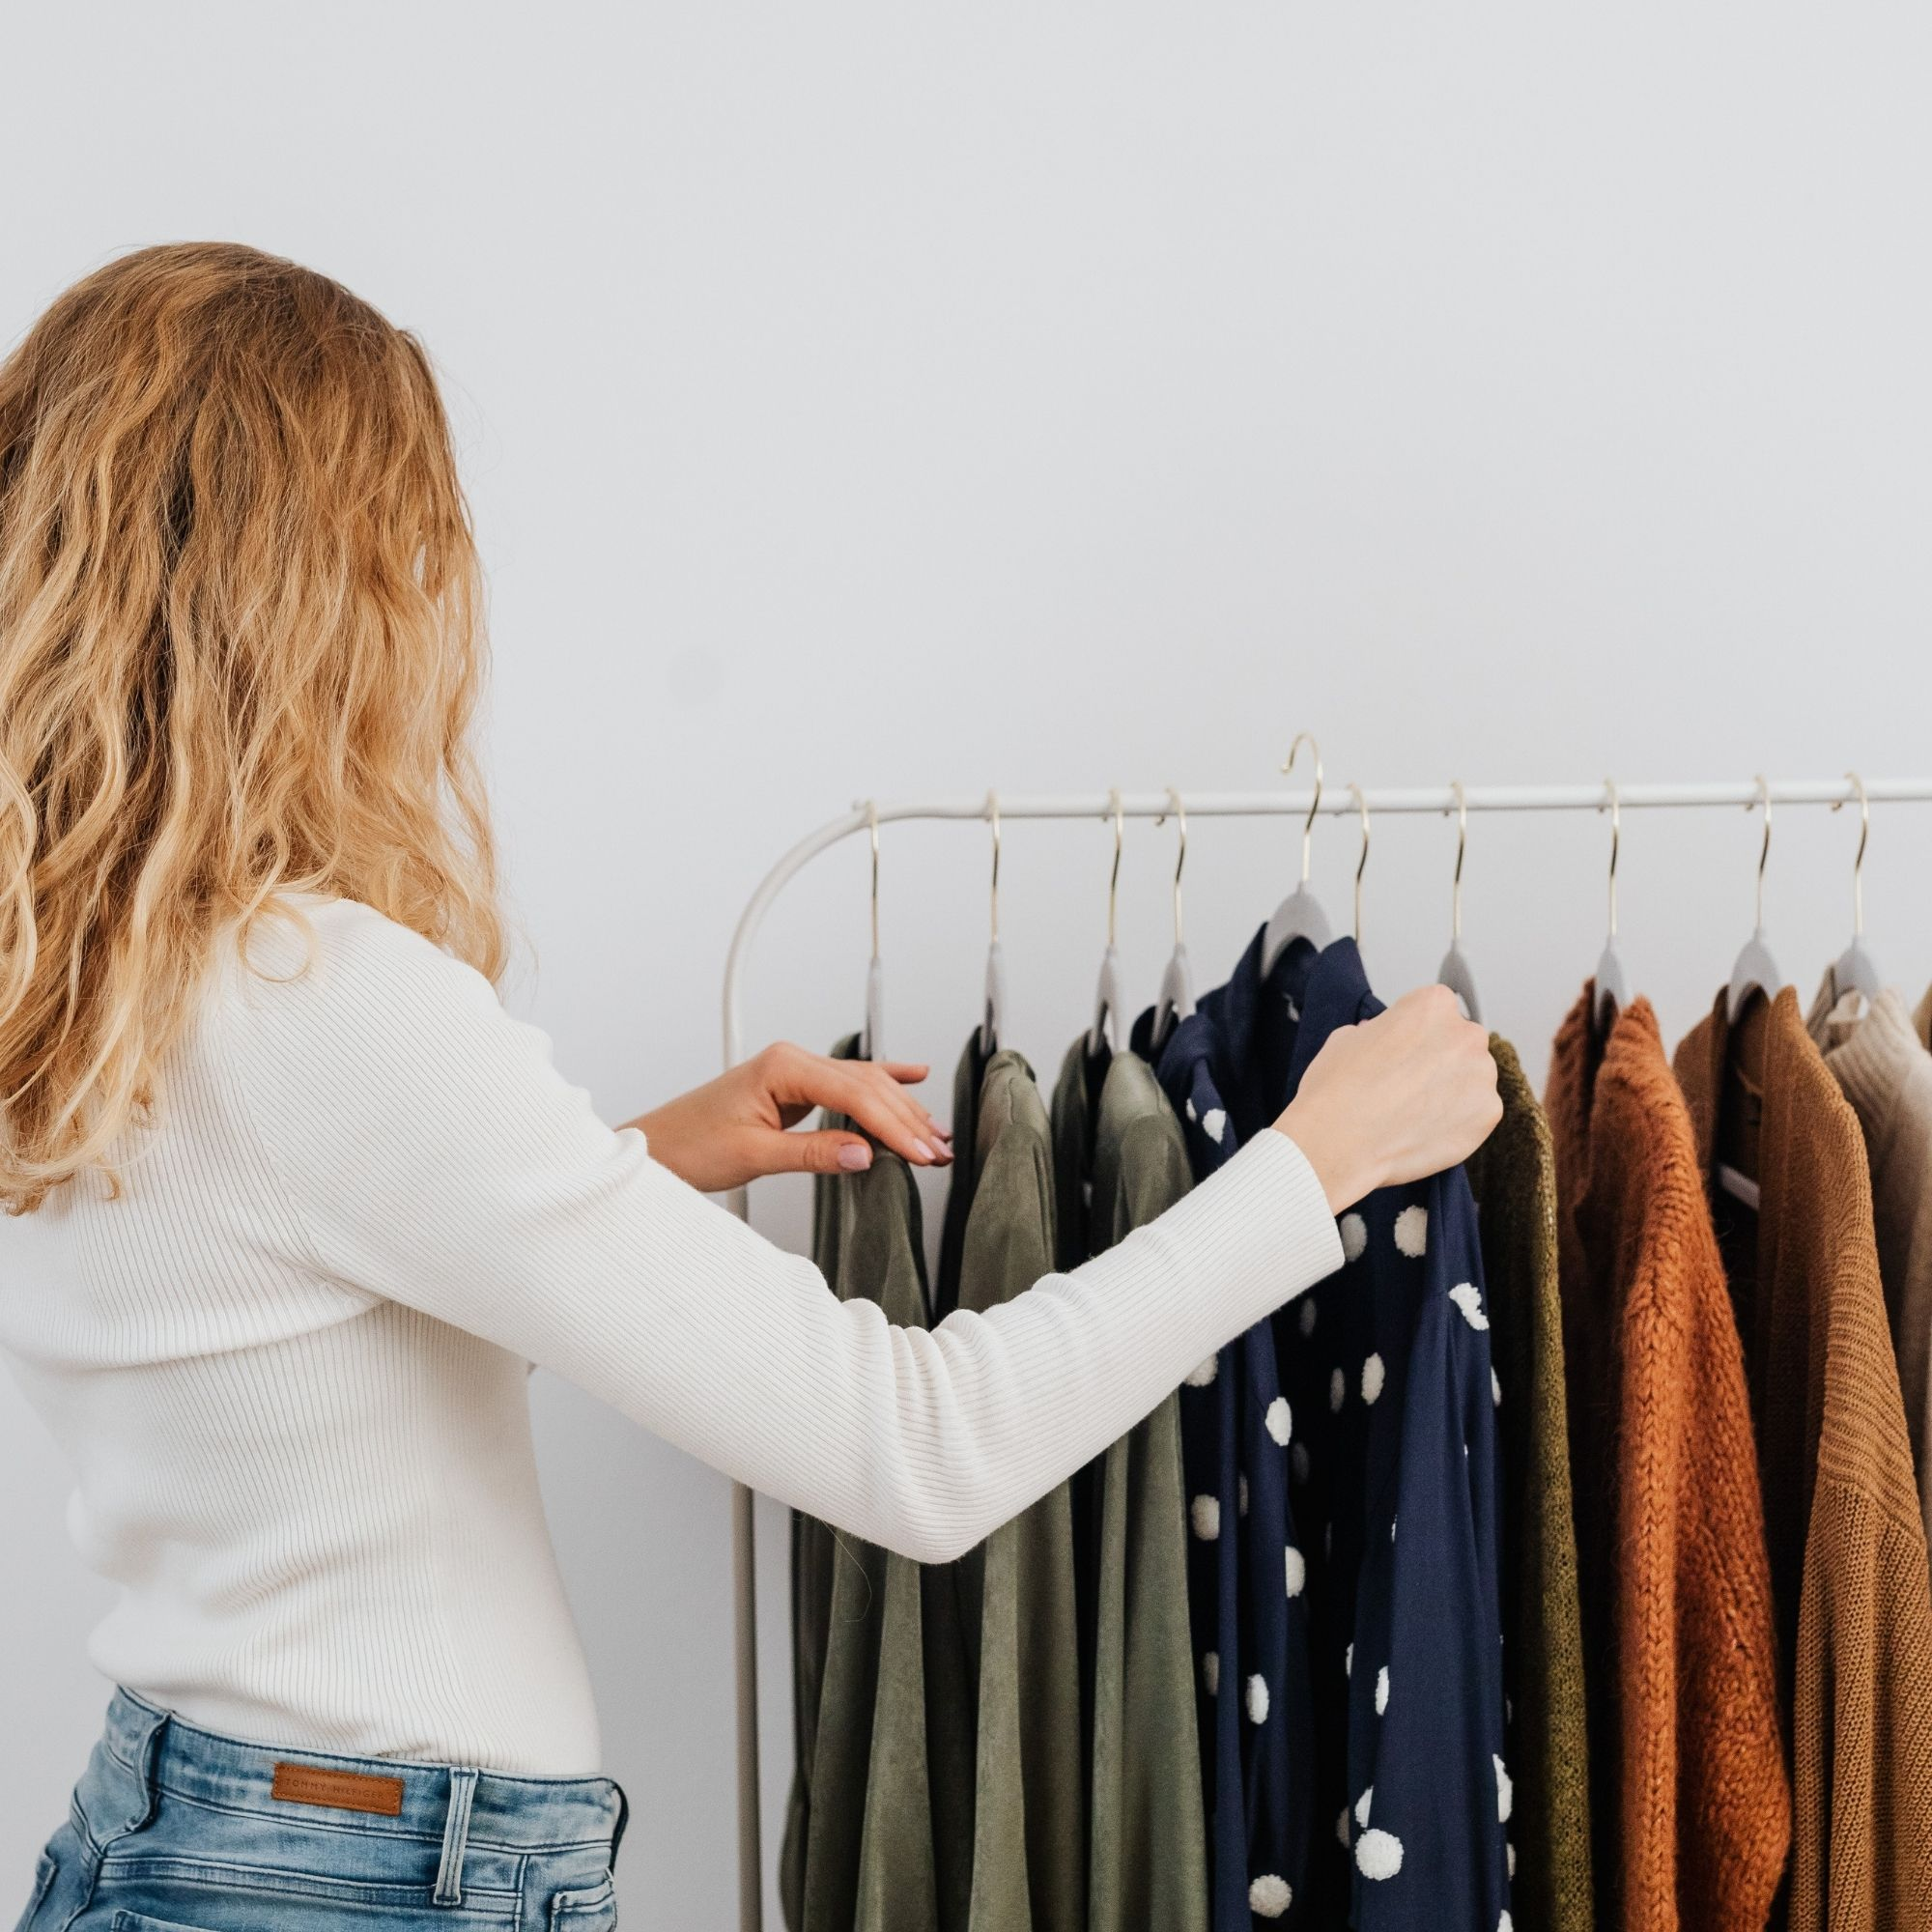 Woman picking out a polka dot clothing from rack